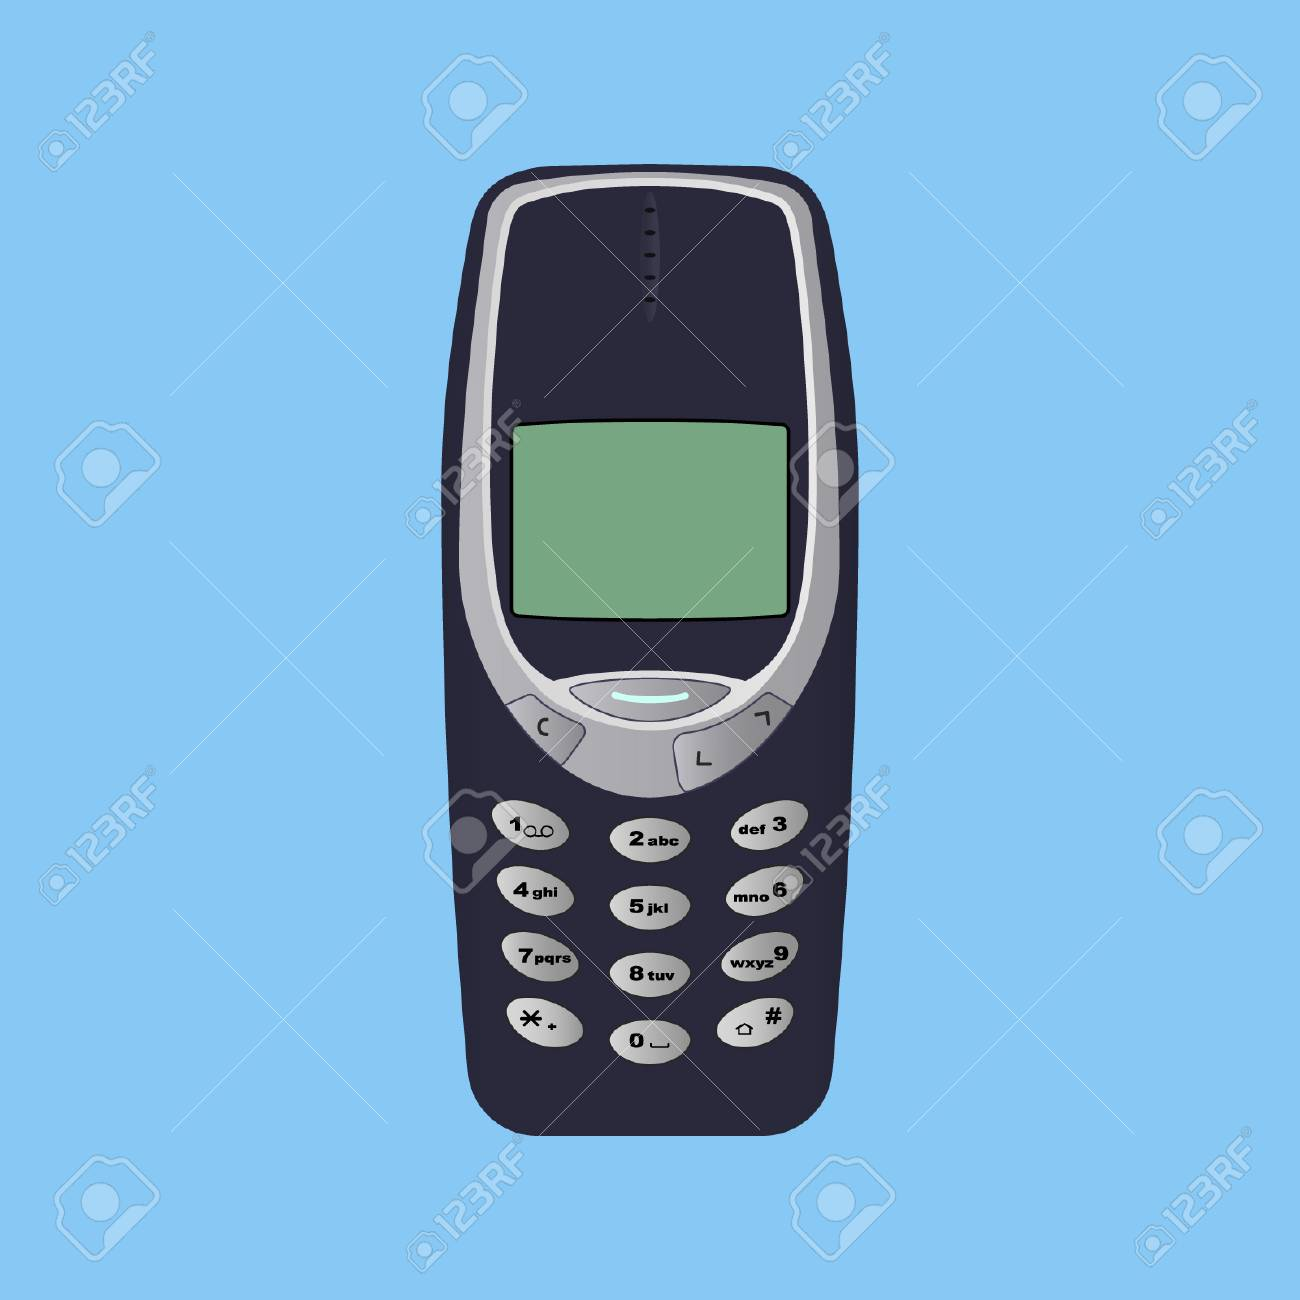 Old Mobile Phone - Vector Design - 110619541